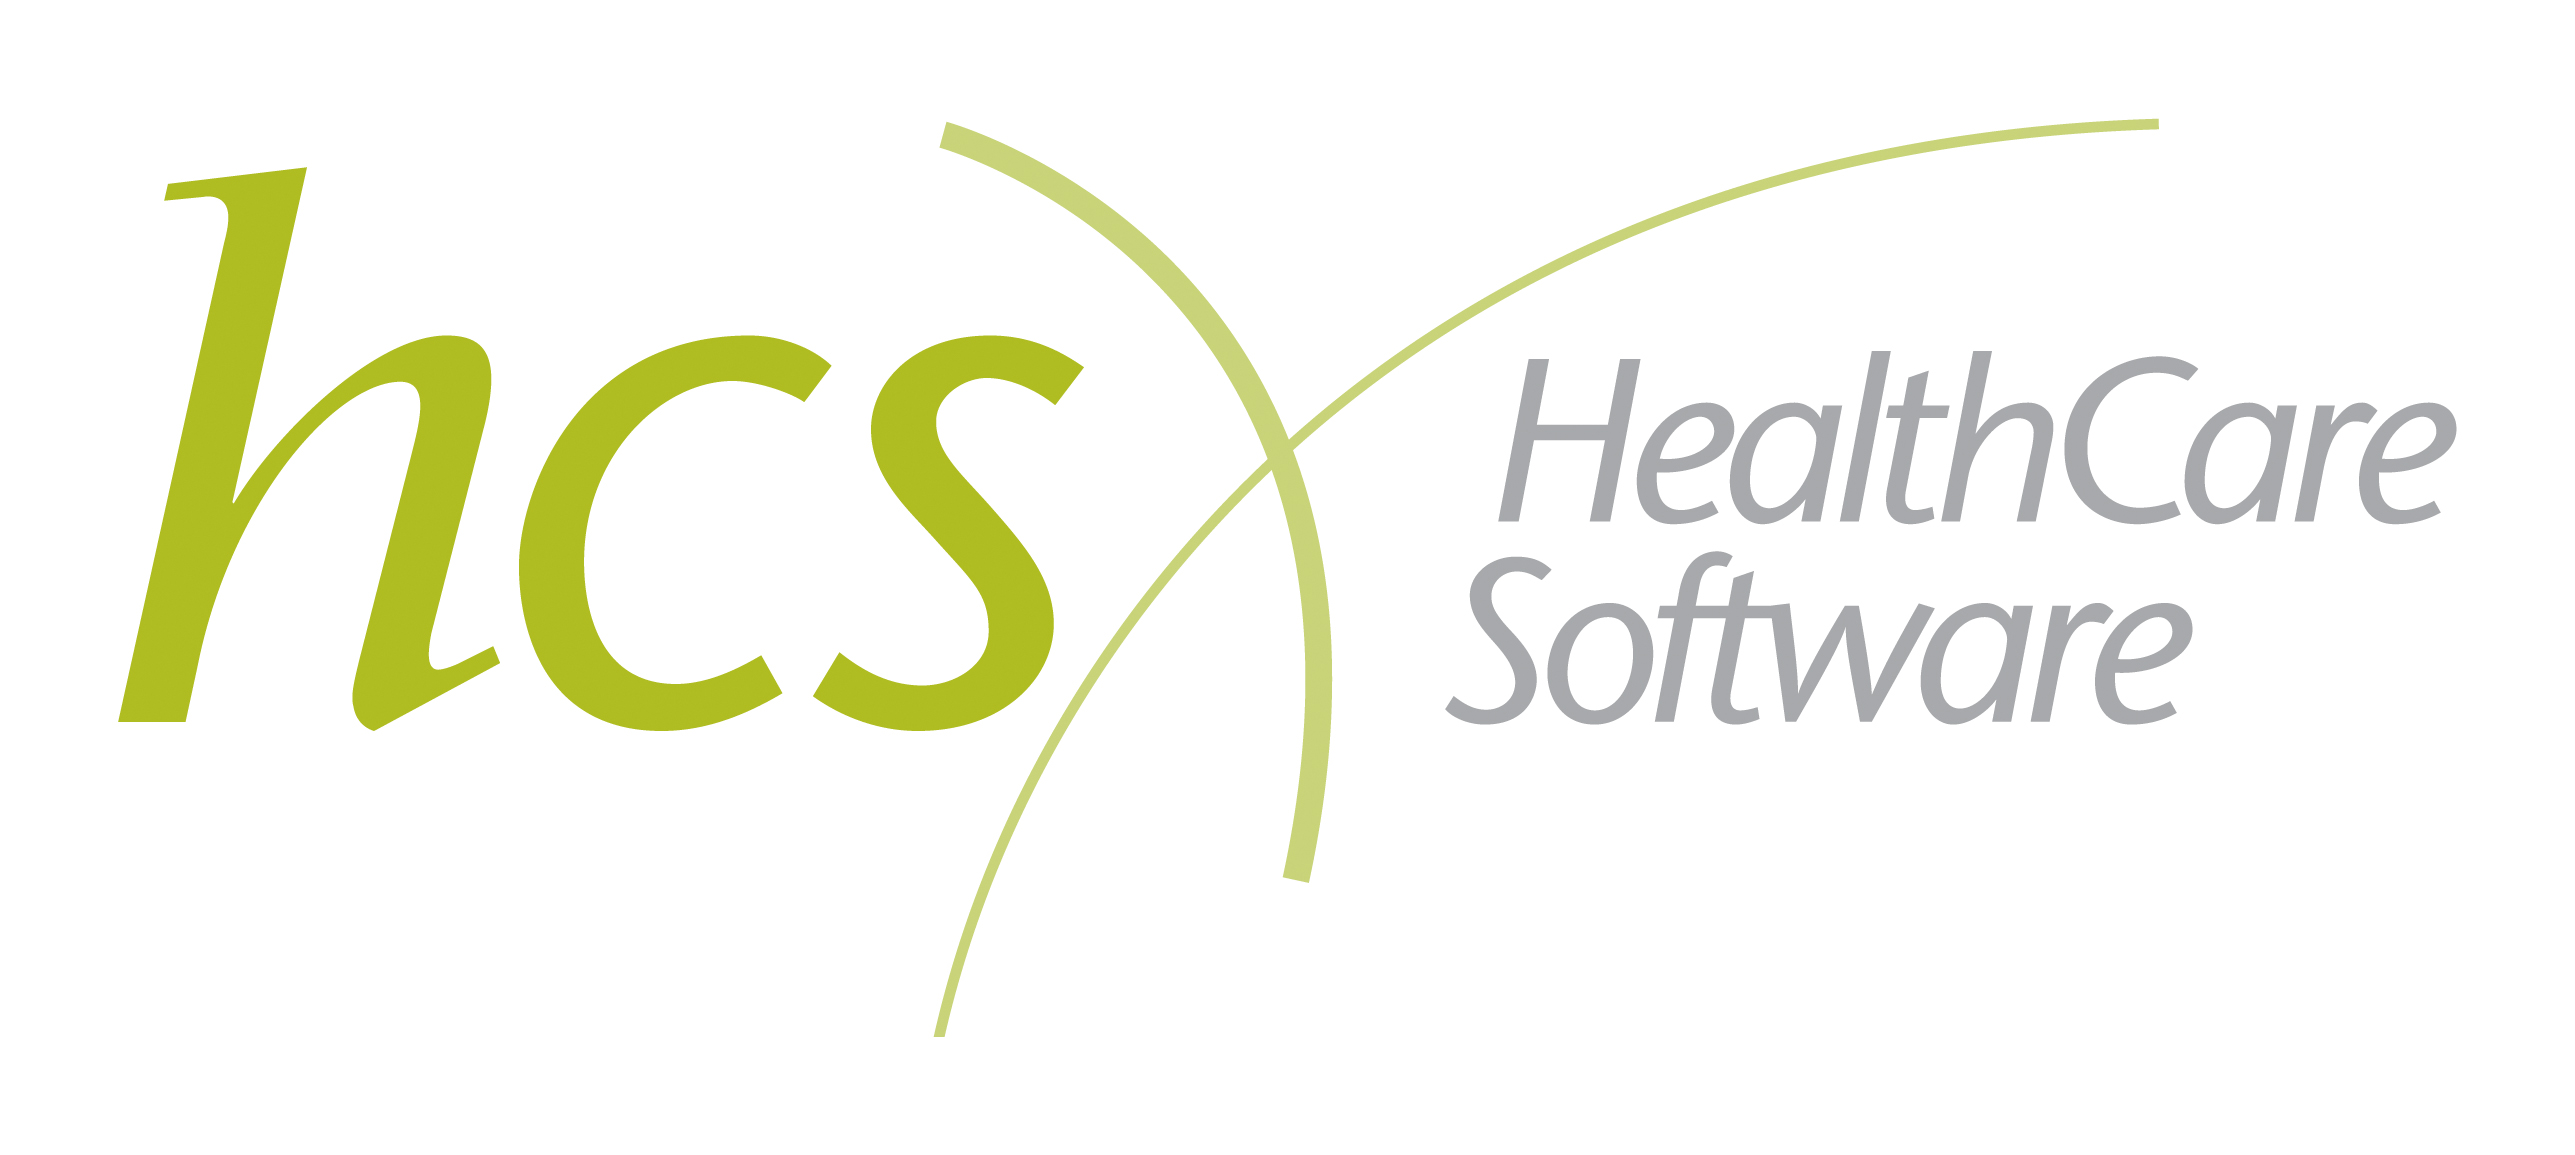 Health Care Software